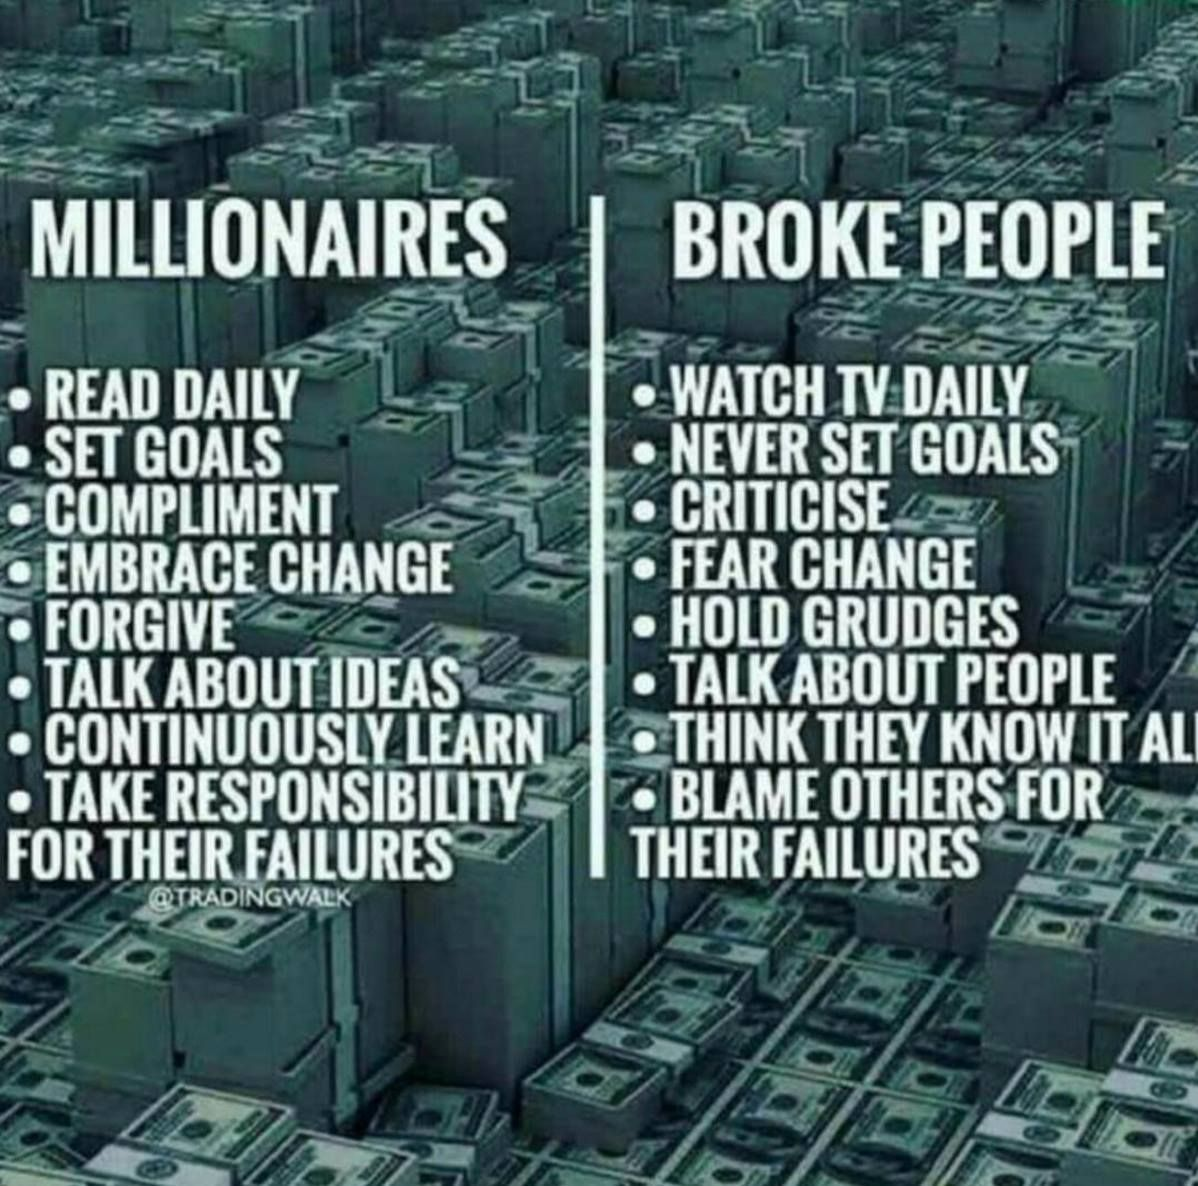 What Category Are You In? Remember That We Create Our